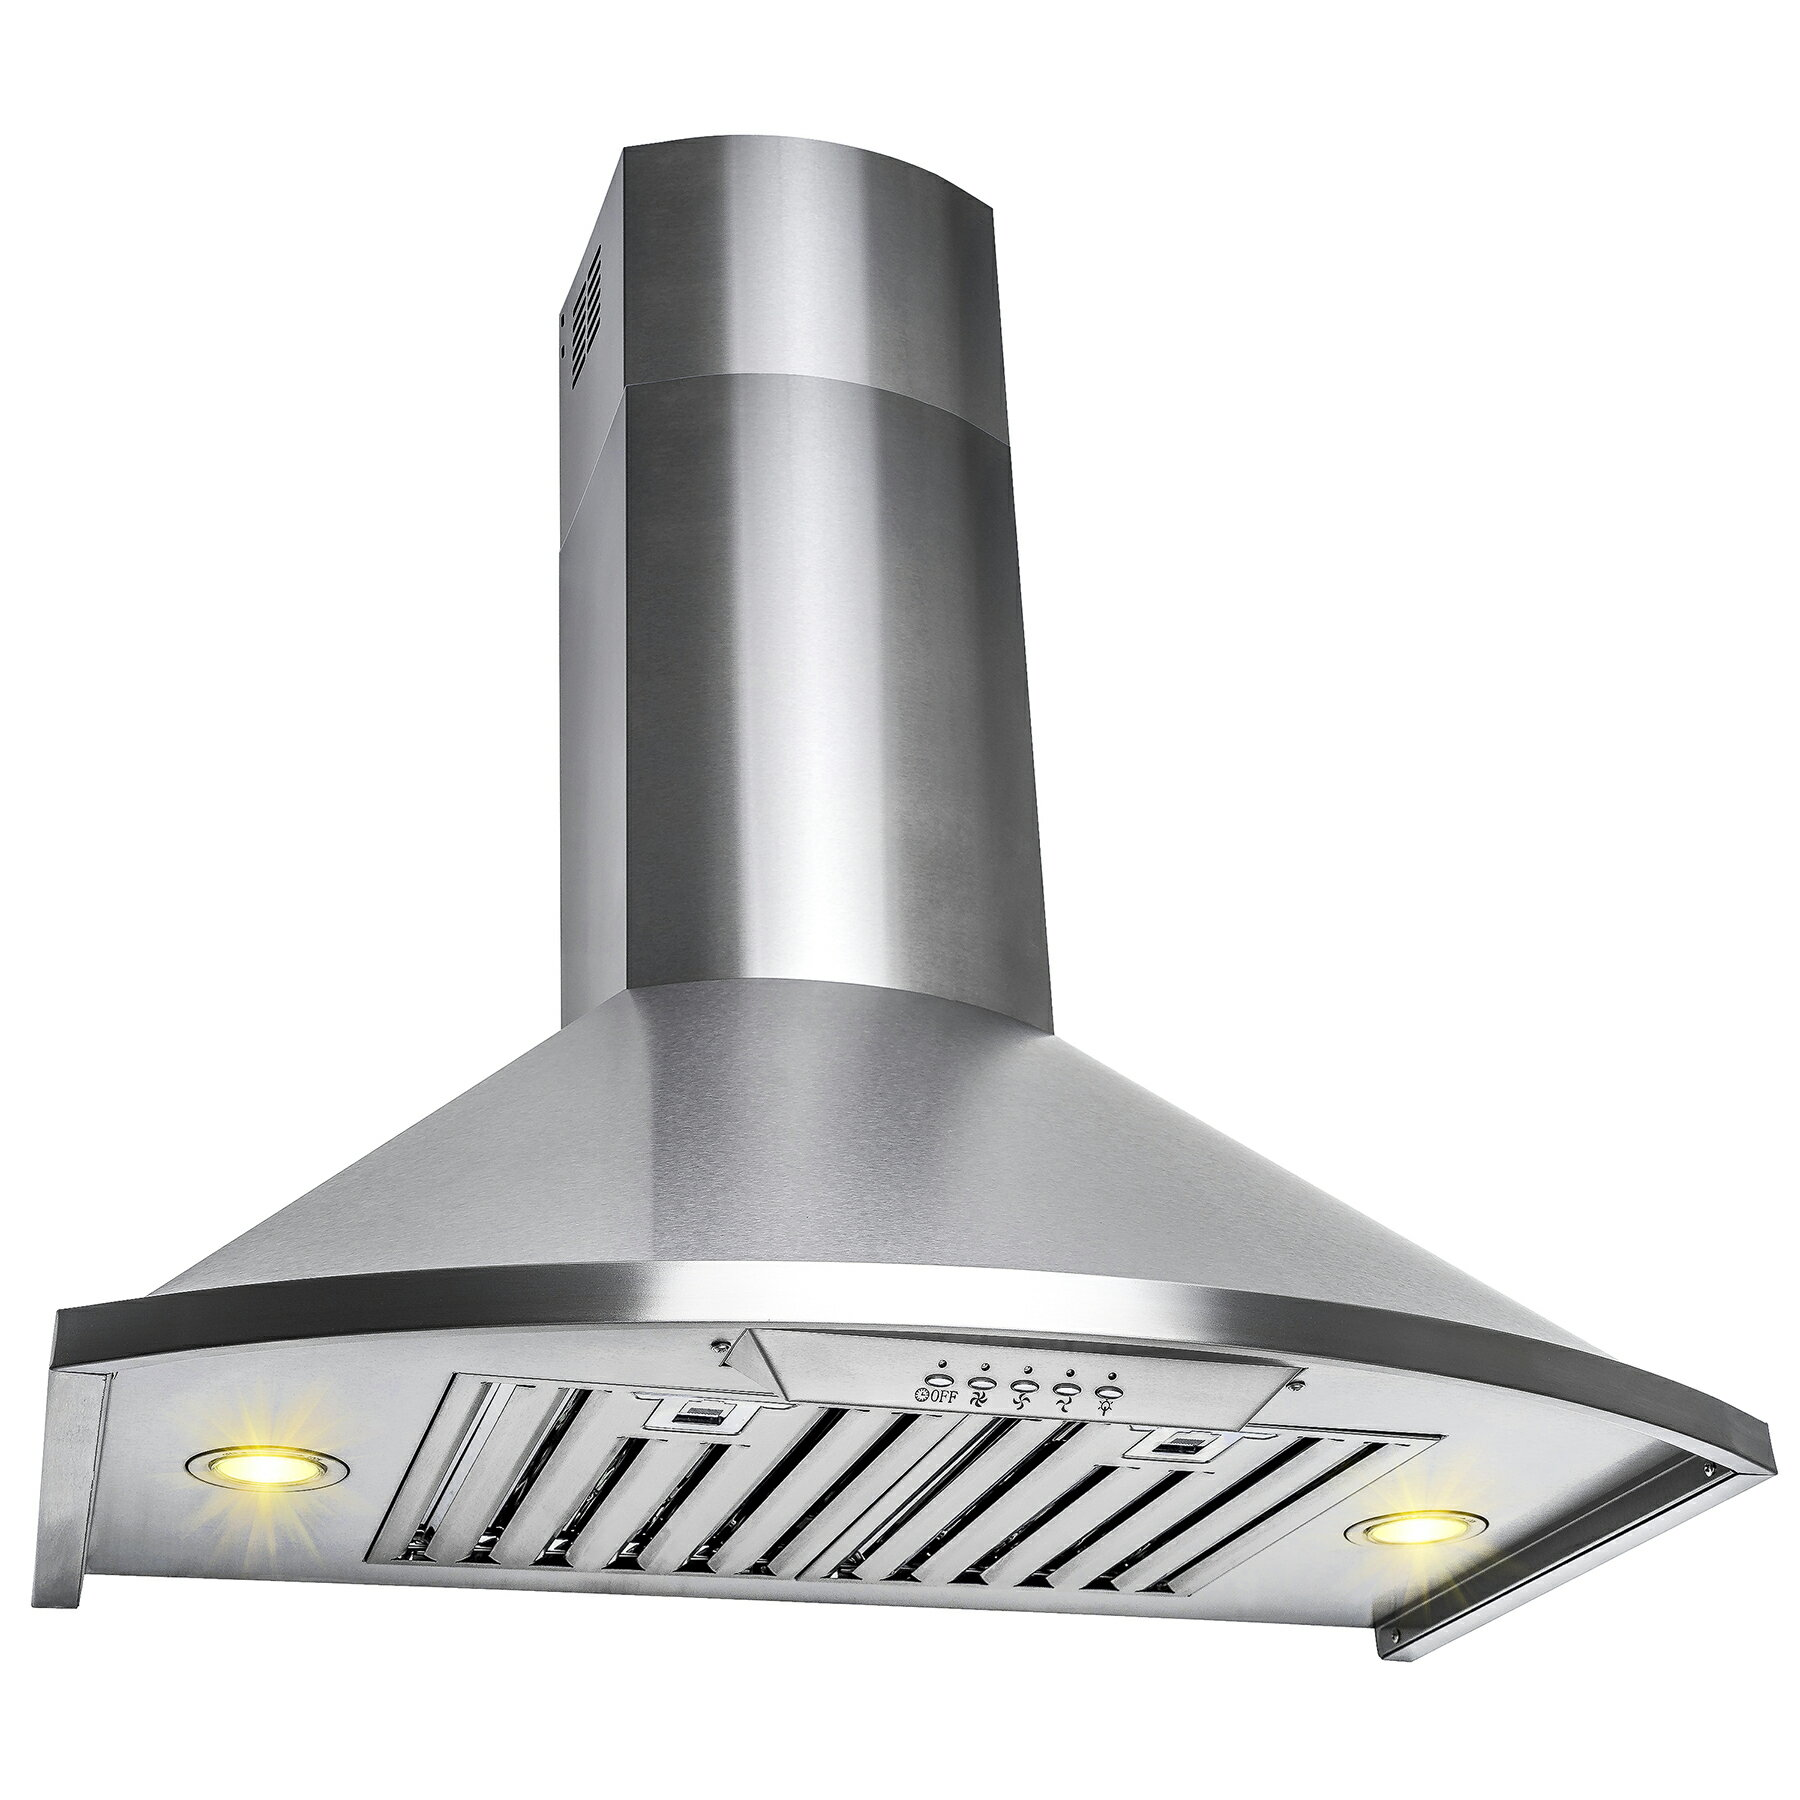 "AKDY 30"" Wall Mount Brushed Stainless Steel Push Button Control Kitchen Range Hood Cooking Vent Fan 2"